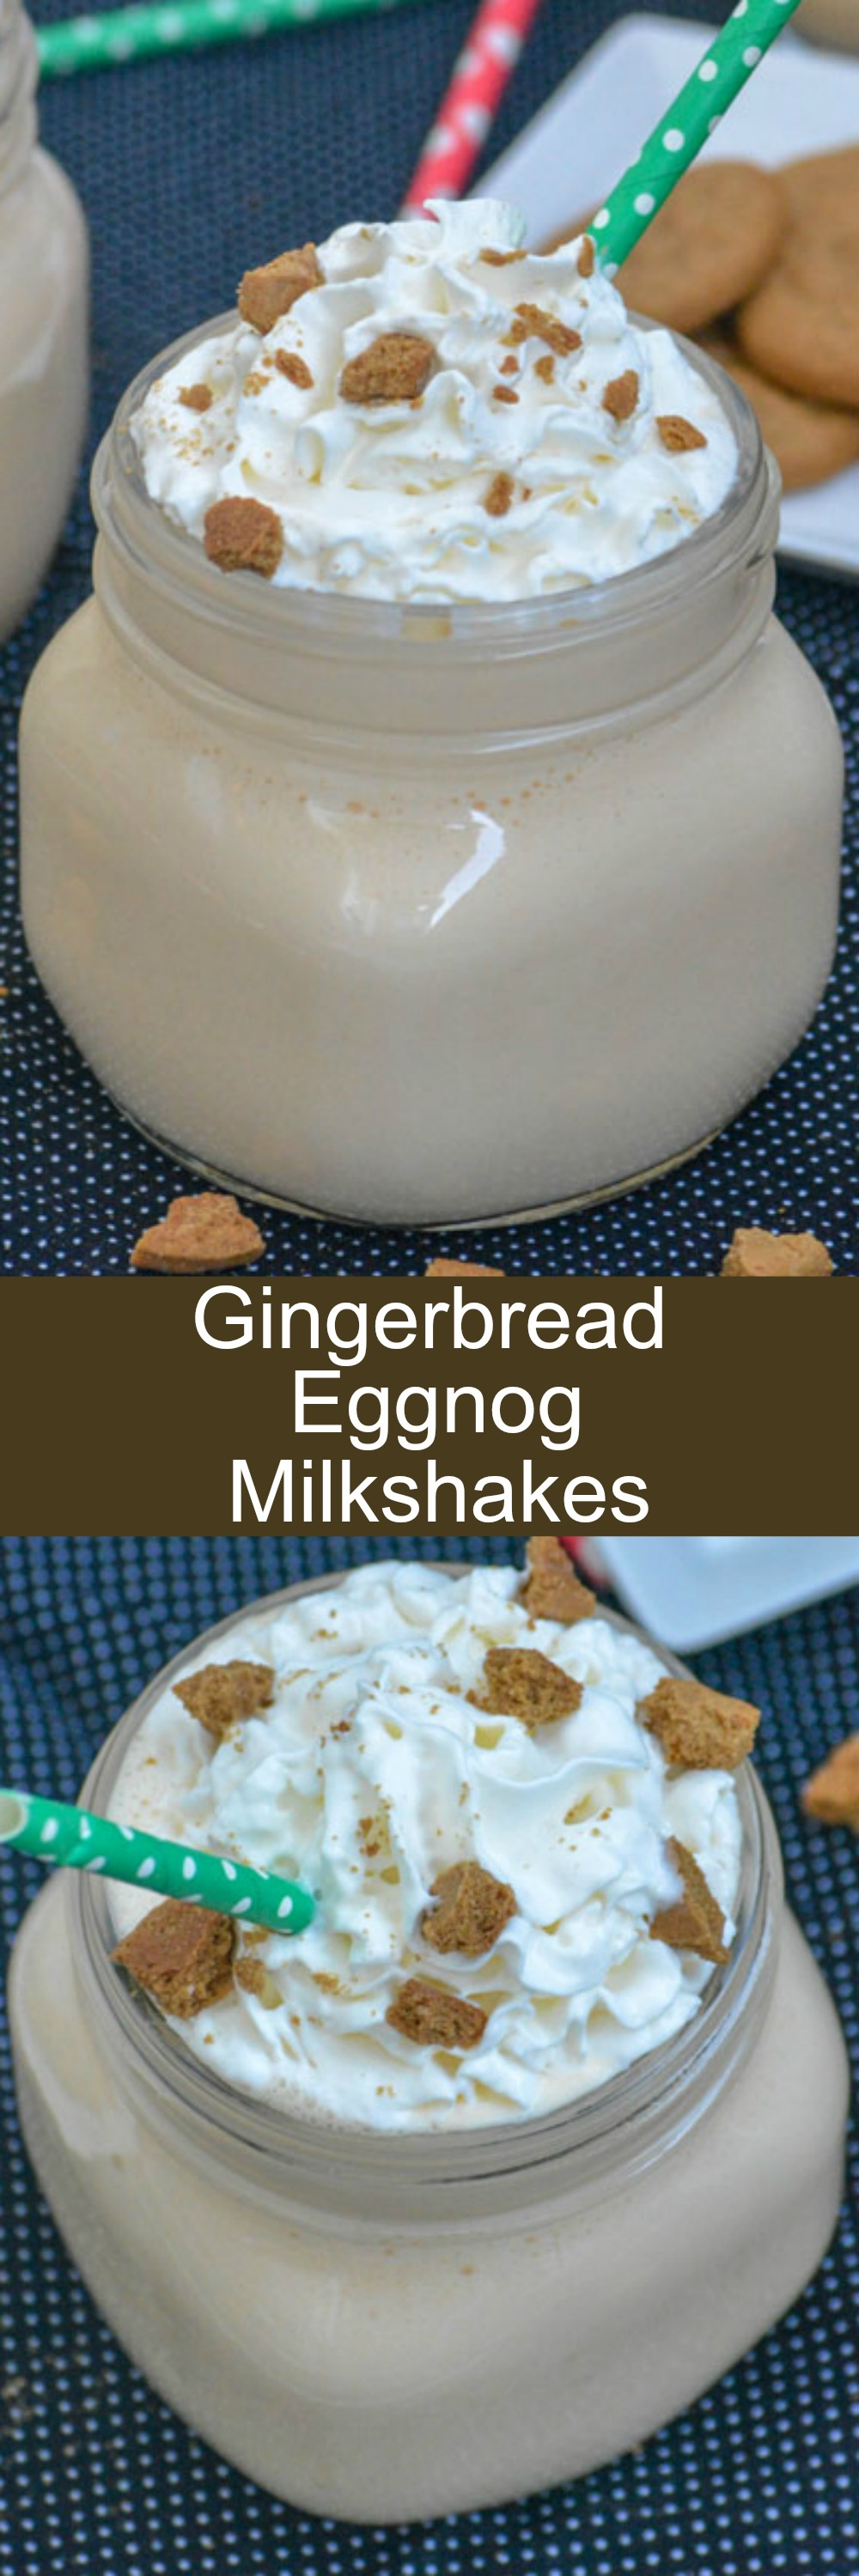 A creamy, dreamy dessert- these Gingerbread Eggnog Milkshakes are the most delicious way to close out this year's holiday season. A smooth mixture of rich eggnog, gingersnaps, and velvety vanilla ice cream- it's a simple treat that's quick and easy to whip up, but full of flavor.